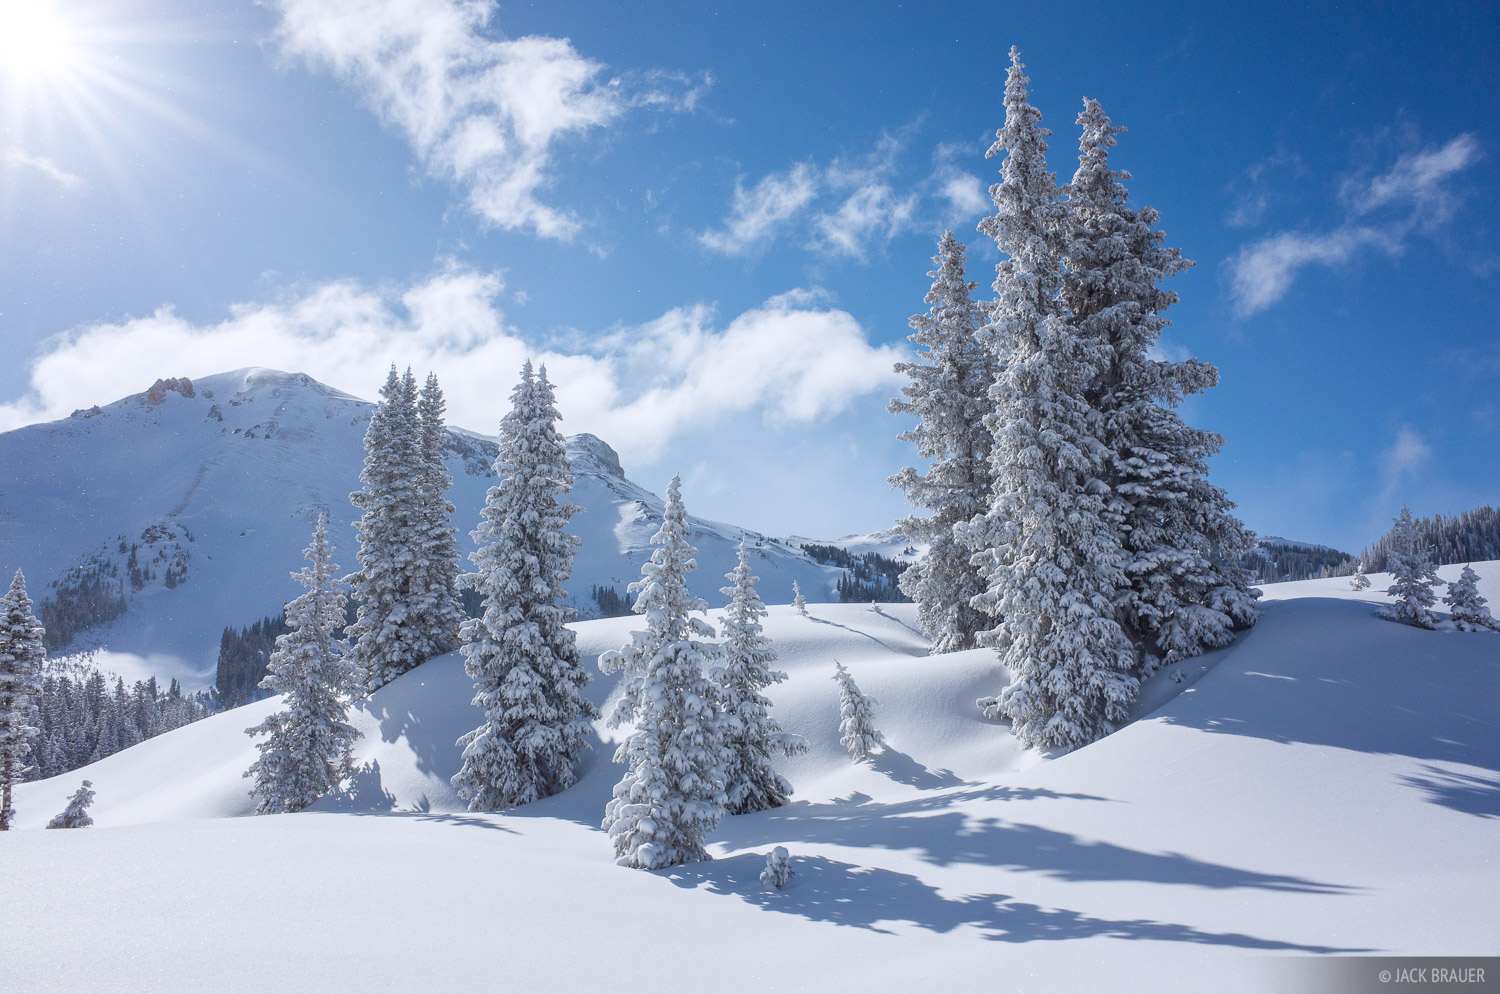 Colorado,Red Mountain Pass,San Juan Mountains, snowy, trees, photo